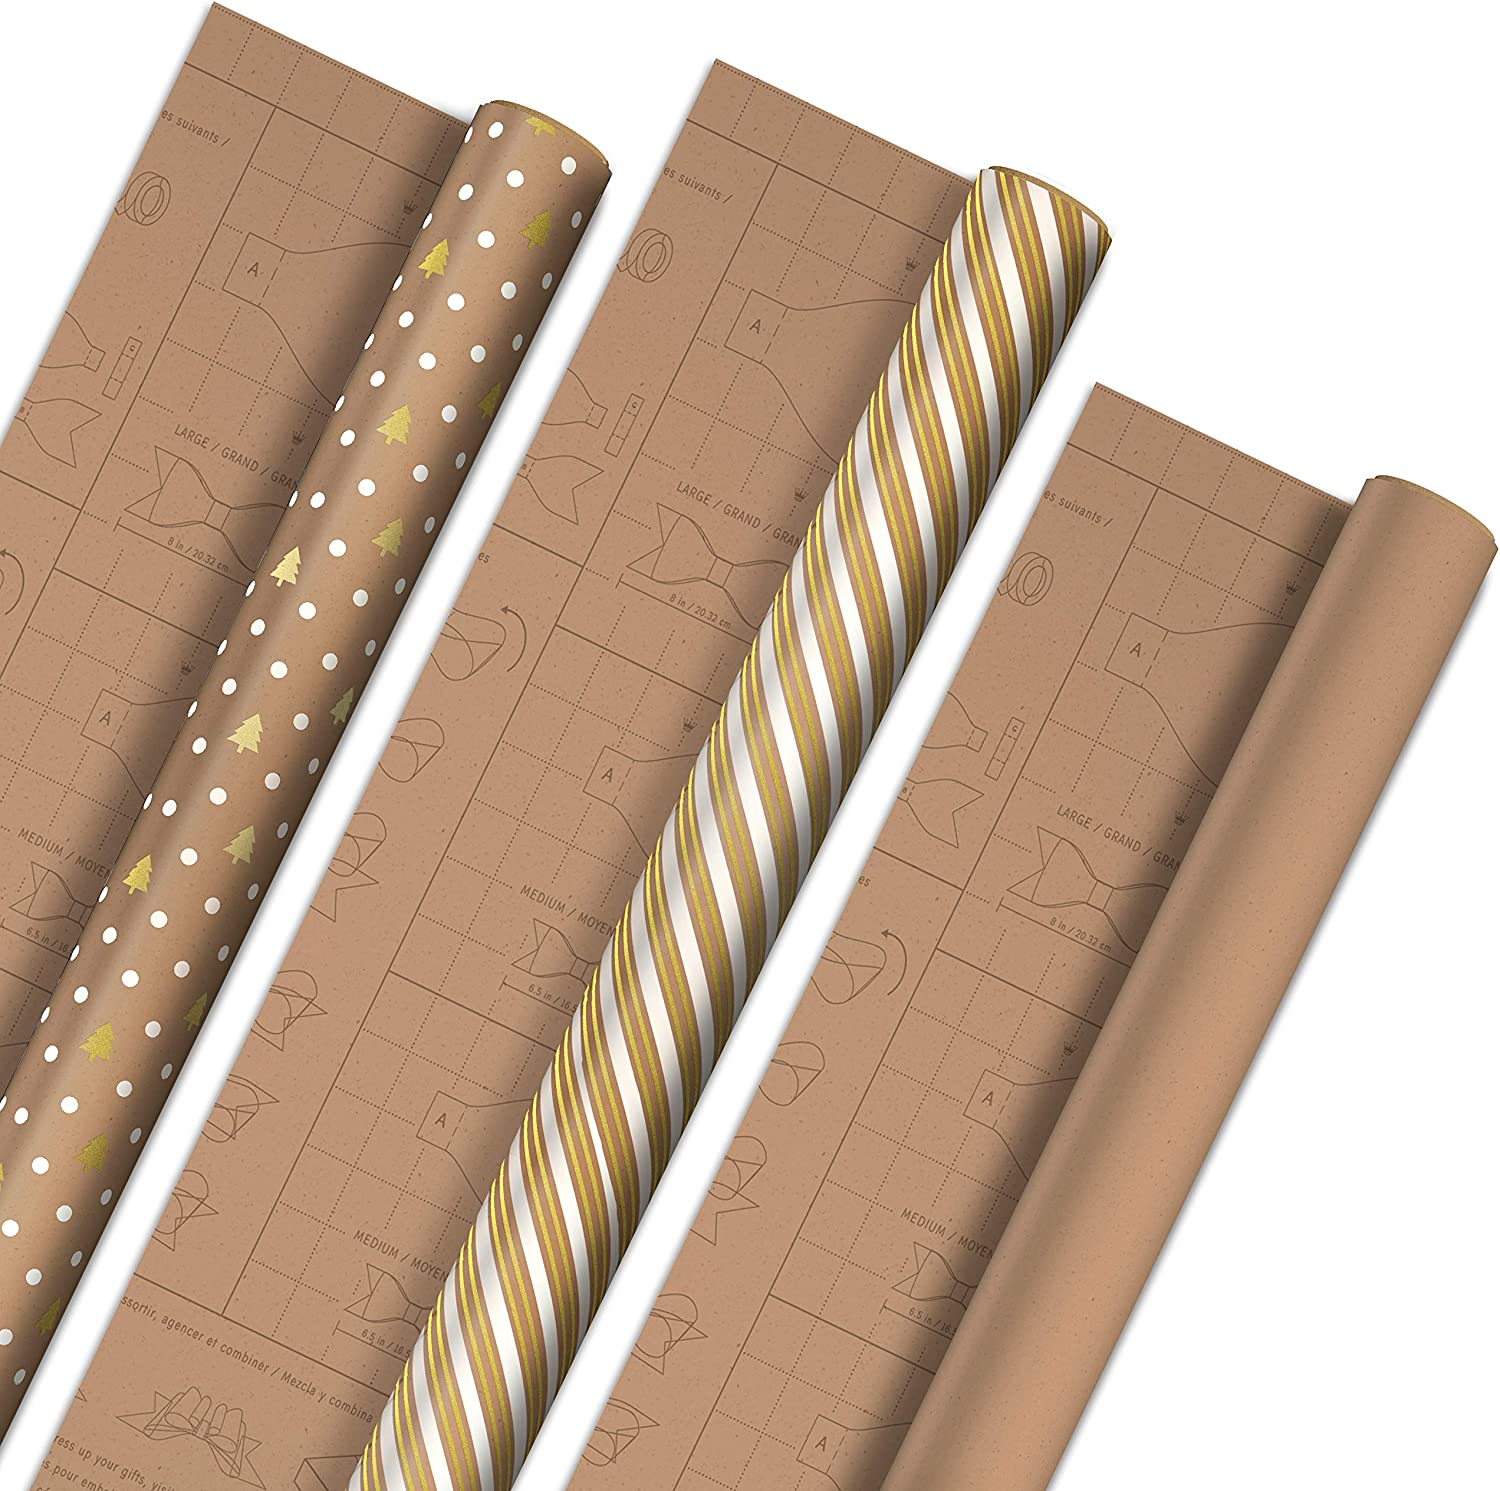 Hallmark Holiday Wrapping Paper with DIY Bow Templates on Reverse (3 Rolls: 120 sq. ft. ttl) Kraft and Gold Christmas Trees, Stripes, Solid Kraft for Christmas, Hanukkah, Weddings, Birthdays